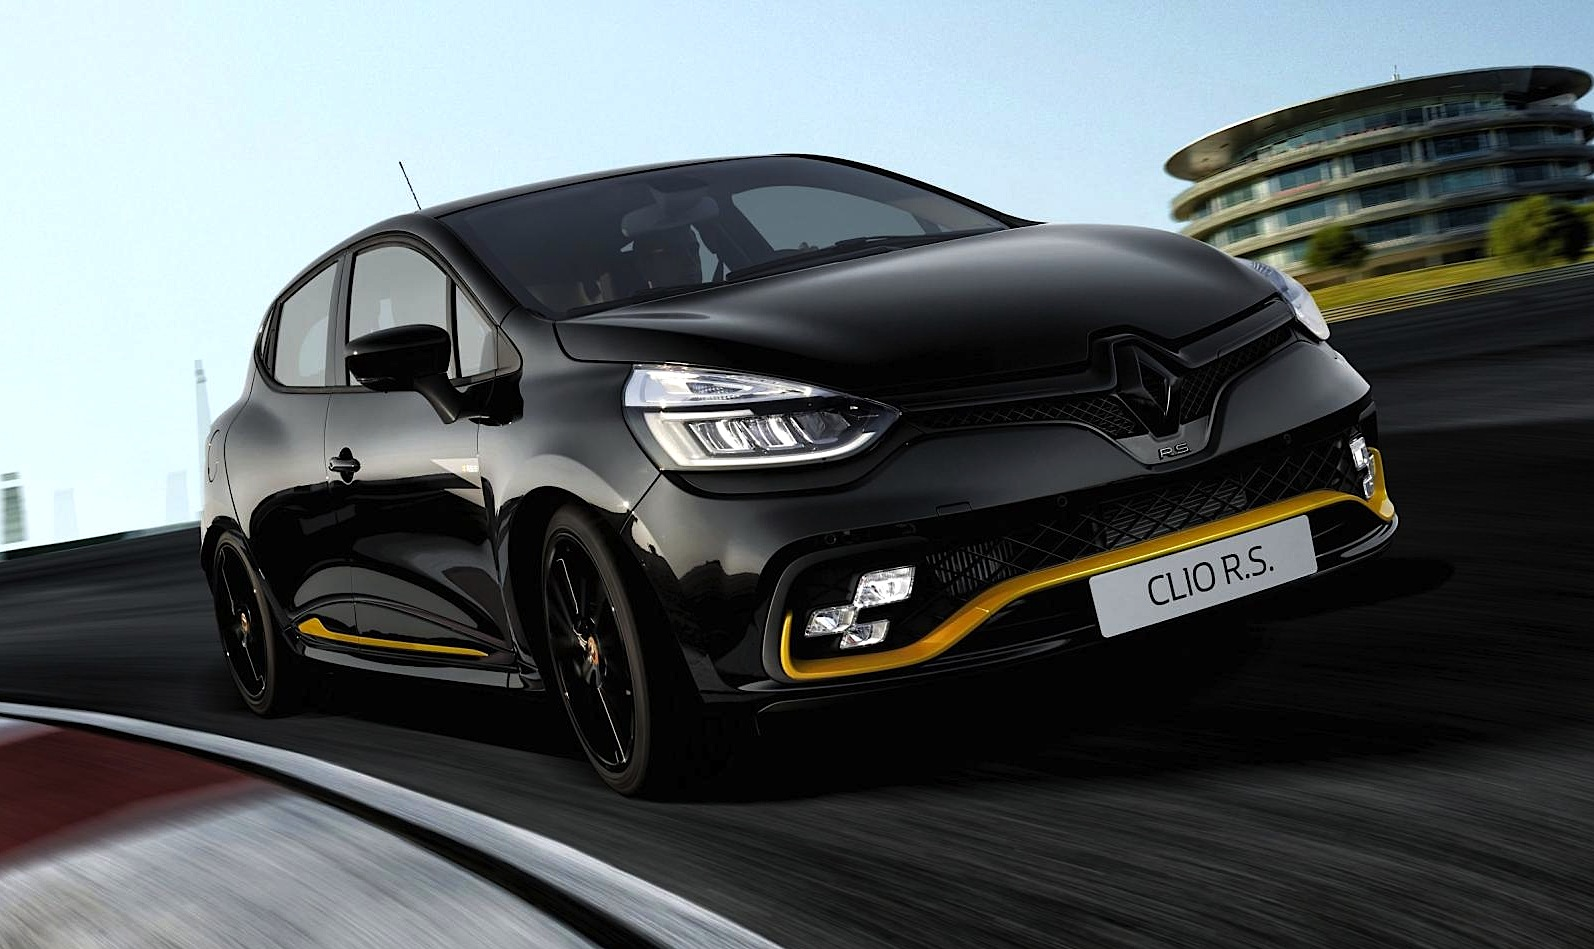 renault clio r s 18 look da formula 1 motorage new generation. Black Bedroom Furniture Sets. Home Design Ideas